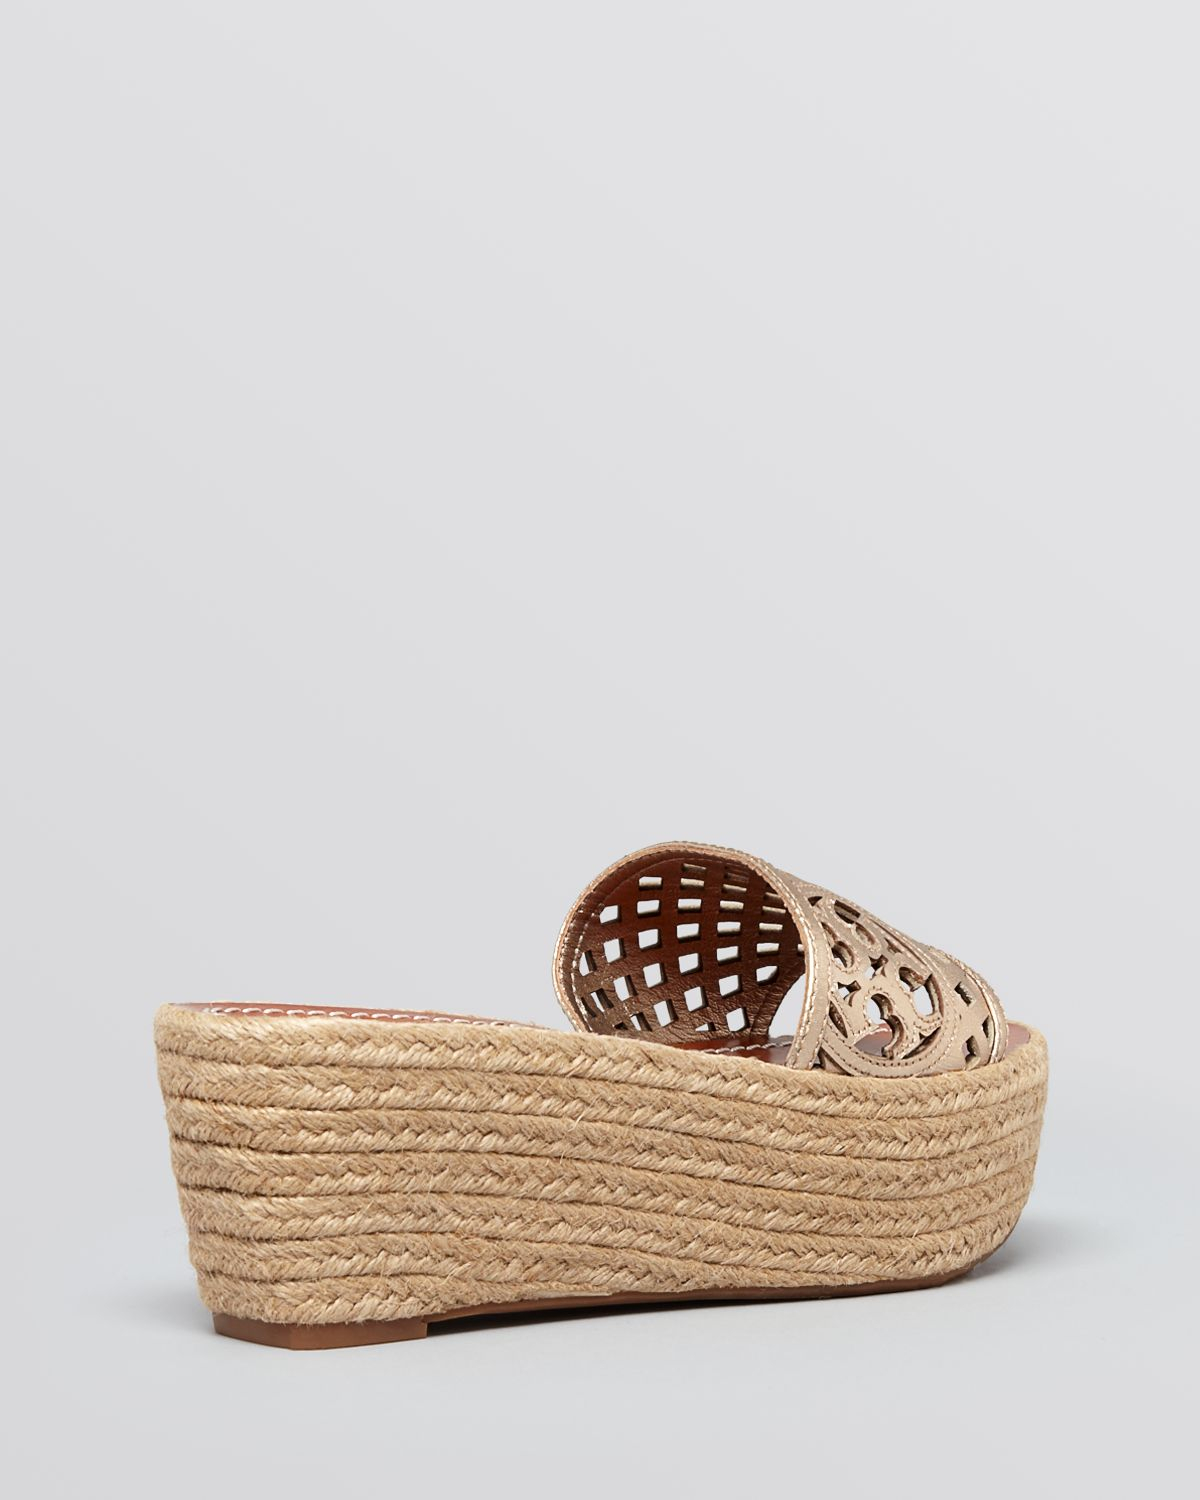 437e7cadbea Tory Burch Platform Wedge Espadrille Sandals - Thatched Perforated ...